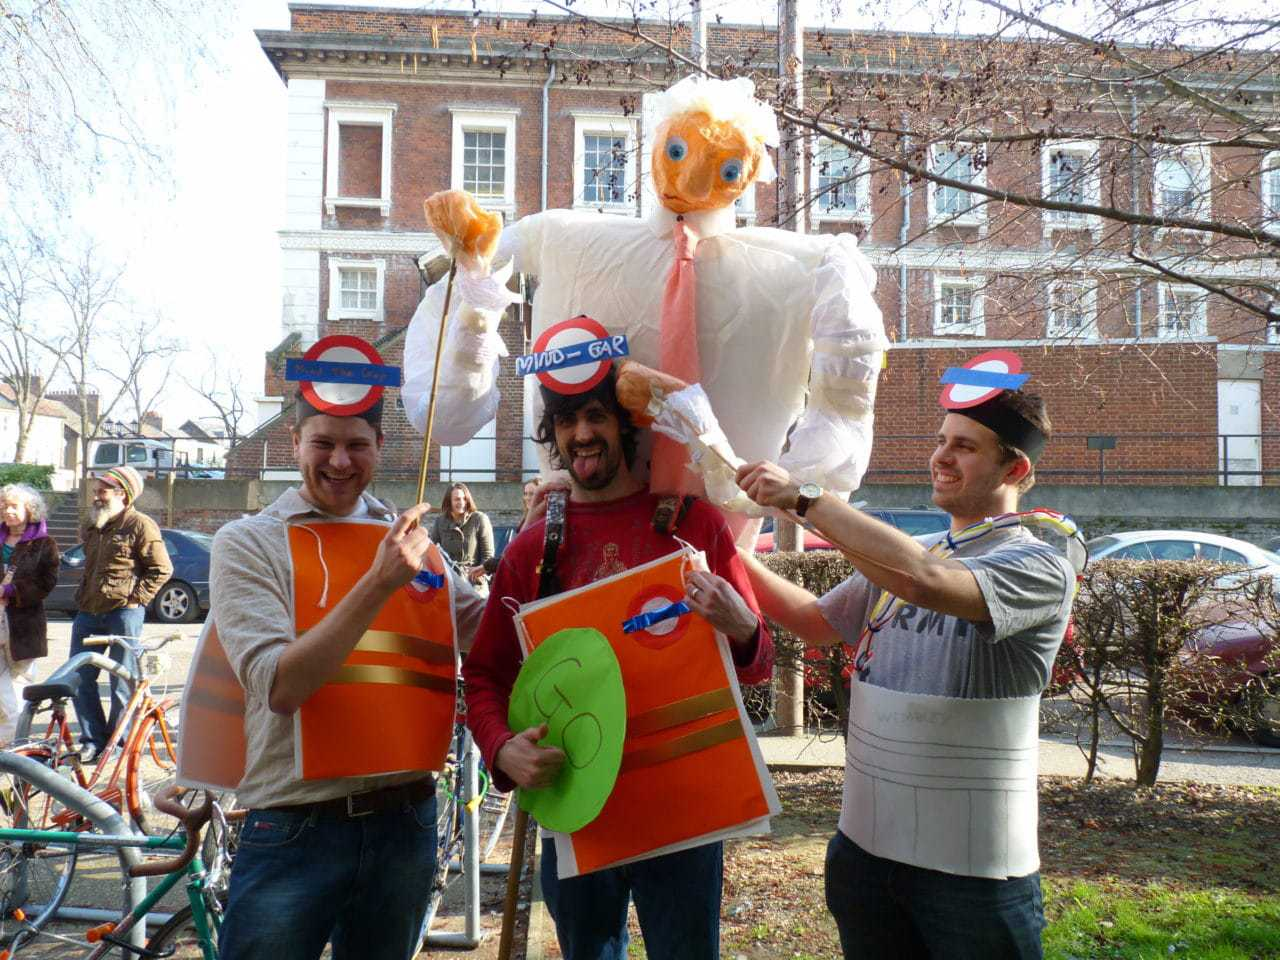 PGCE students' Carnival Week' at Goldsmiths, University of London